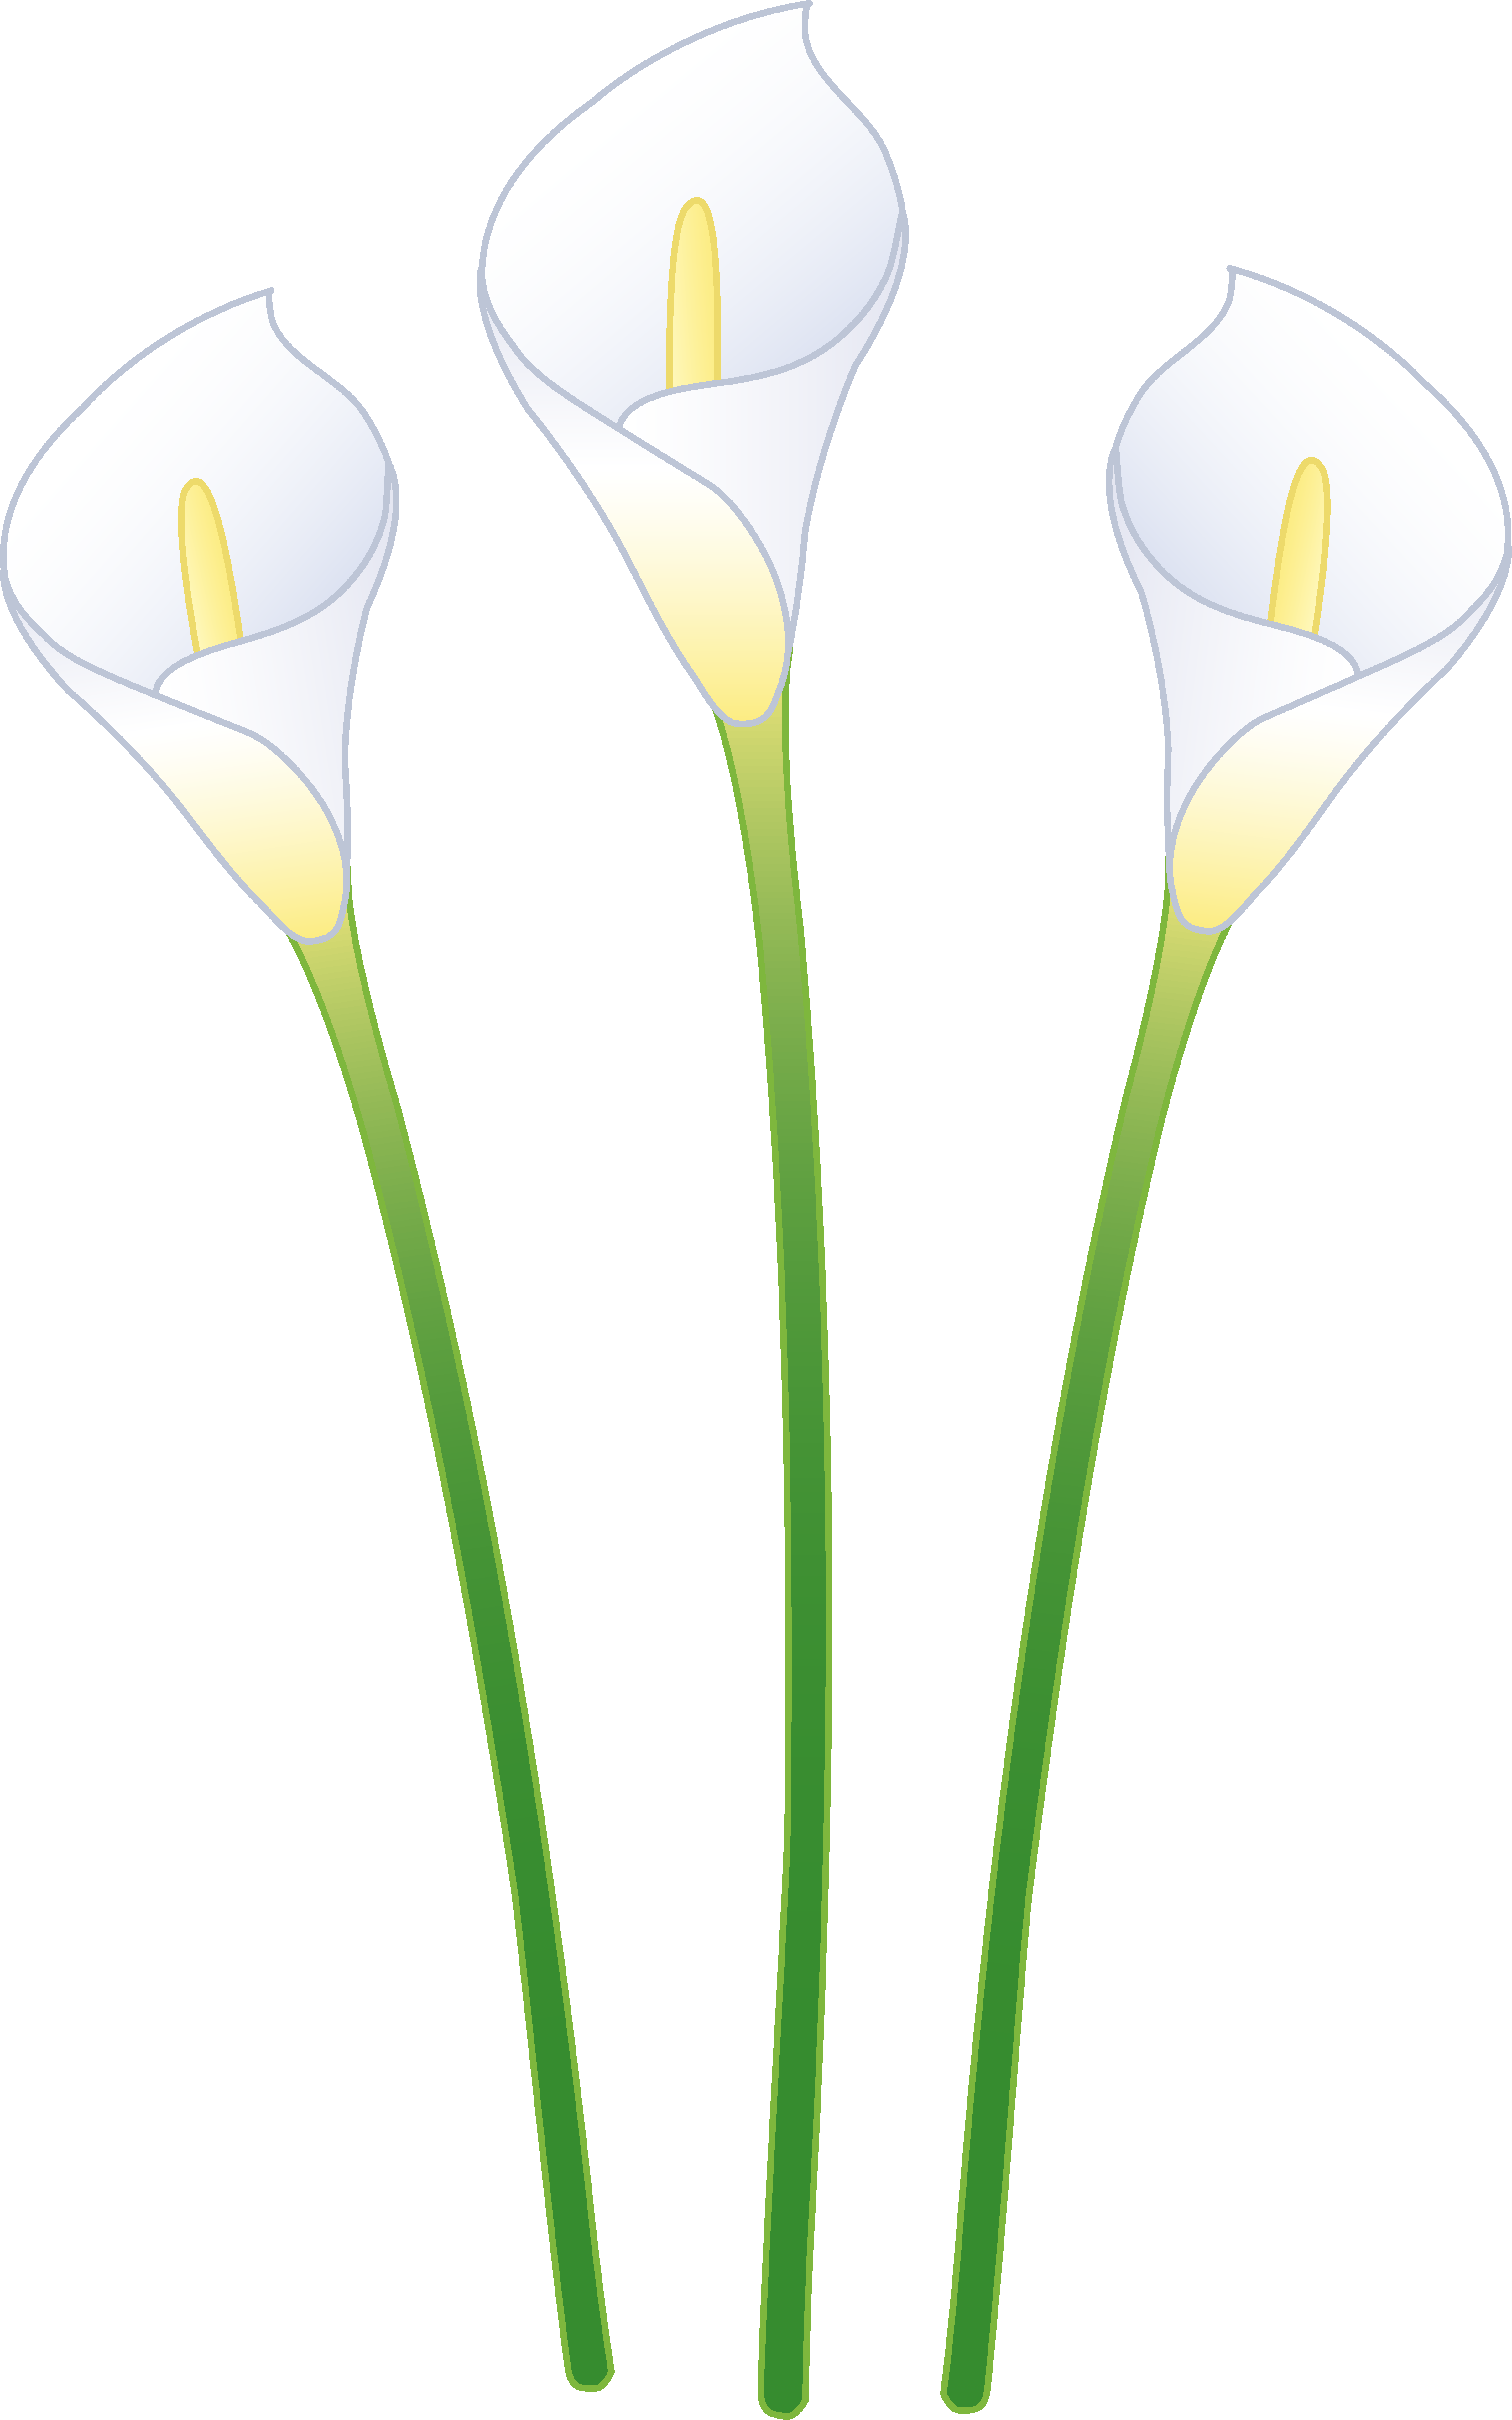 Clipart calla lily flower vector library download Three White Calla Lilies - Free Clip Art vector library download